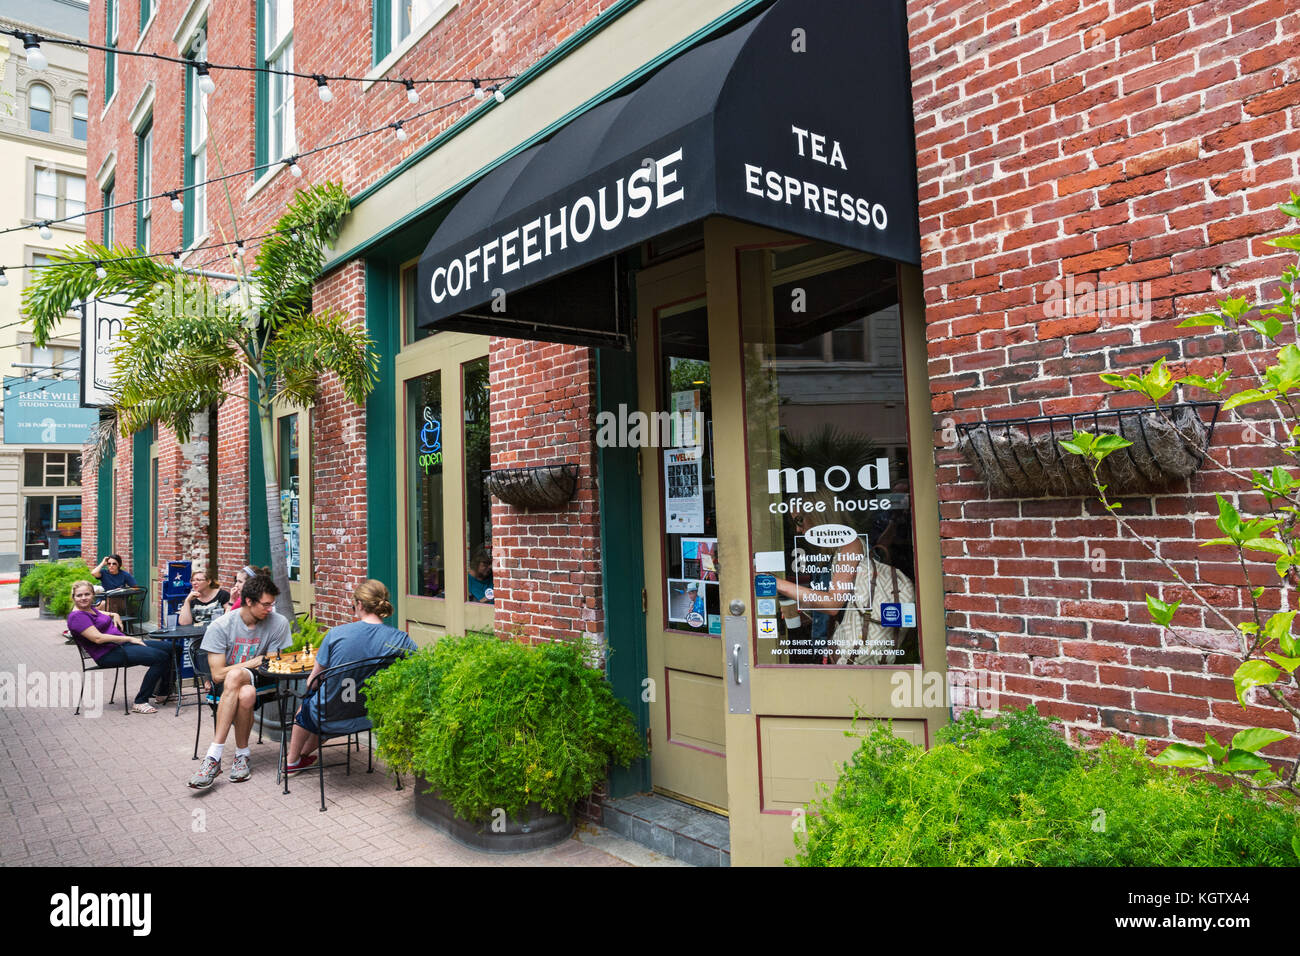 Texas, Galveston, MOD Coffeehouse, 2126 Post Office Street - Stock Image